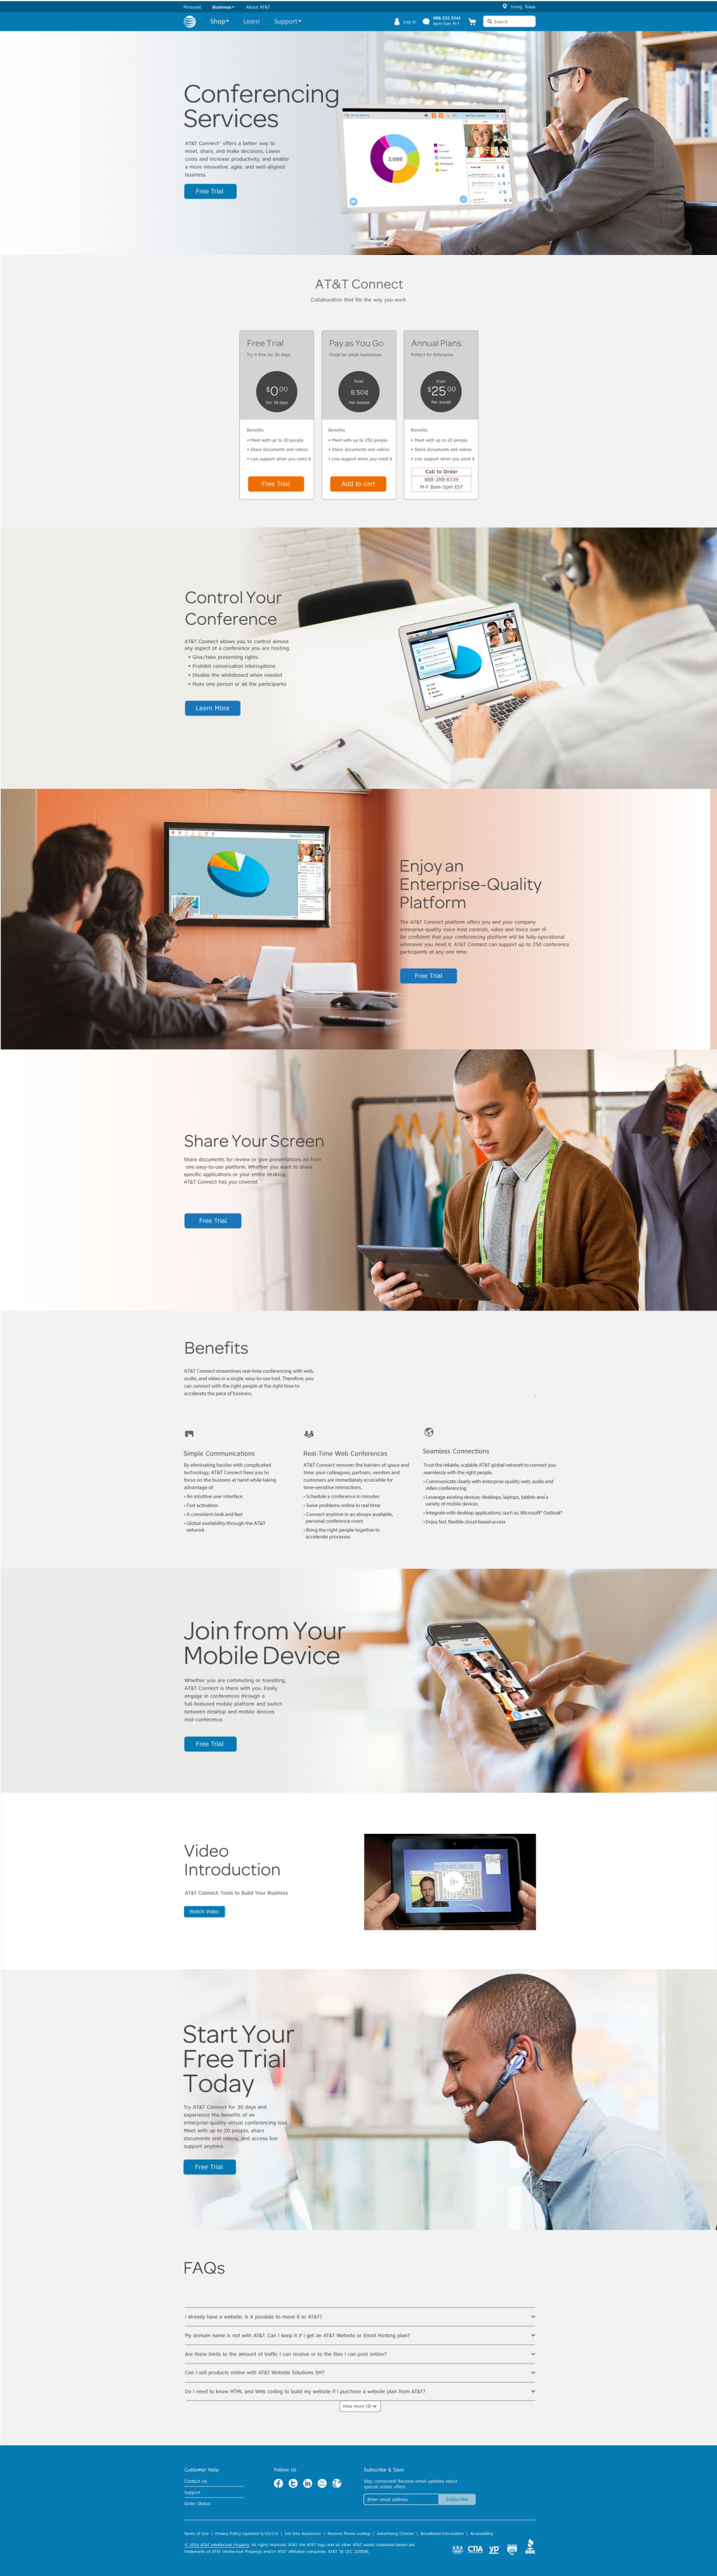 Entire Comp for the Conferencing Services page - (created by the Visual Designer)